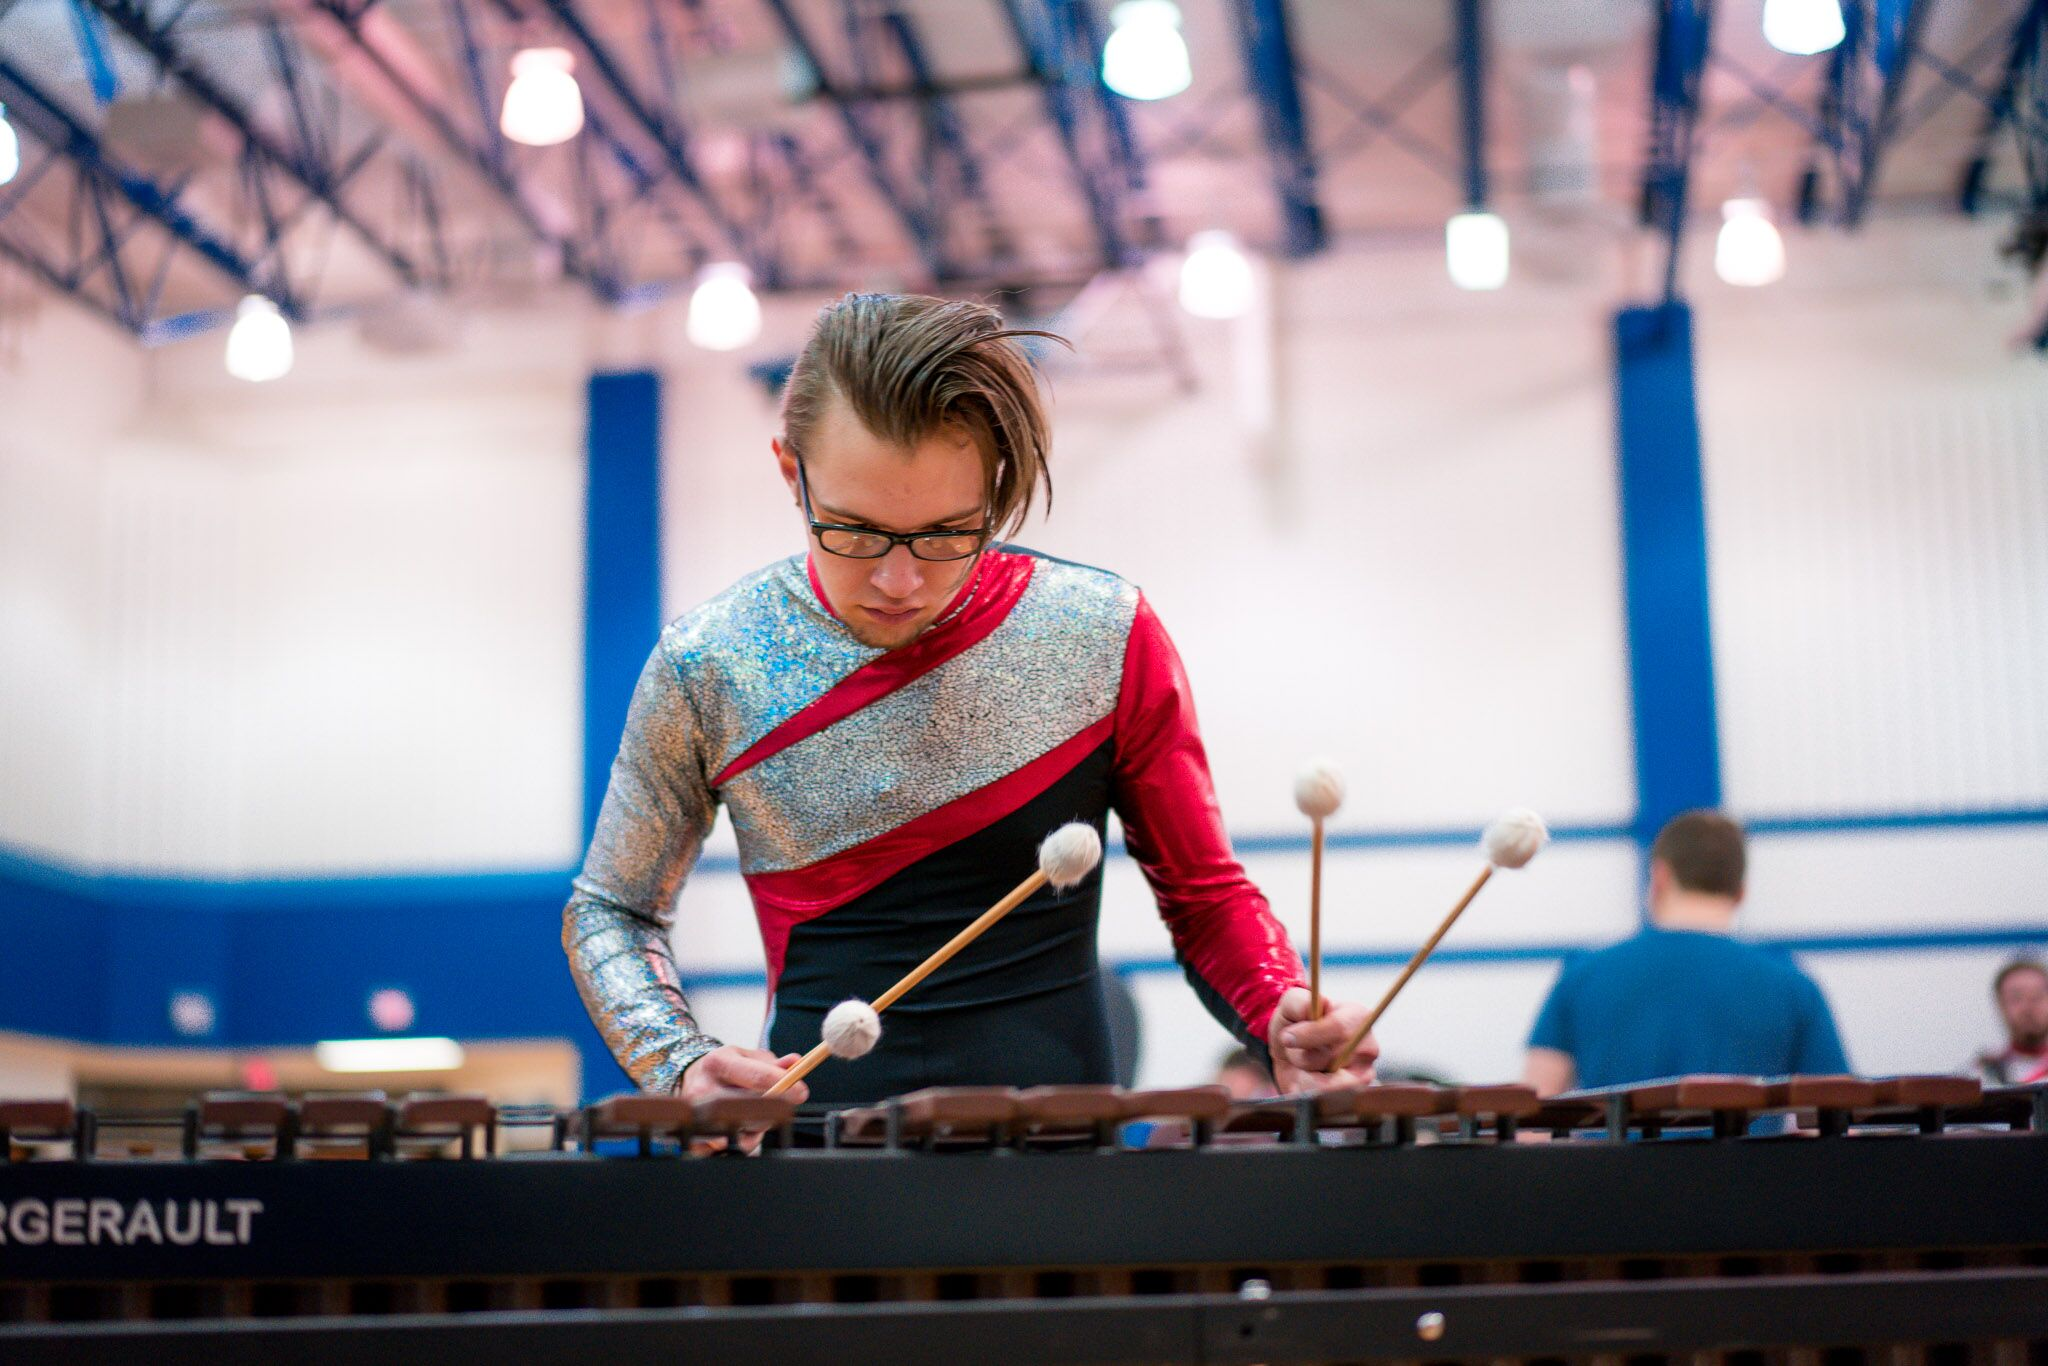 Bryan Rooker plays the marimba during warm up at the 2018 WGI Indianapolis Regional. INov8 won the open class category with a score of 90.15.